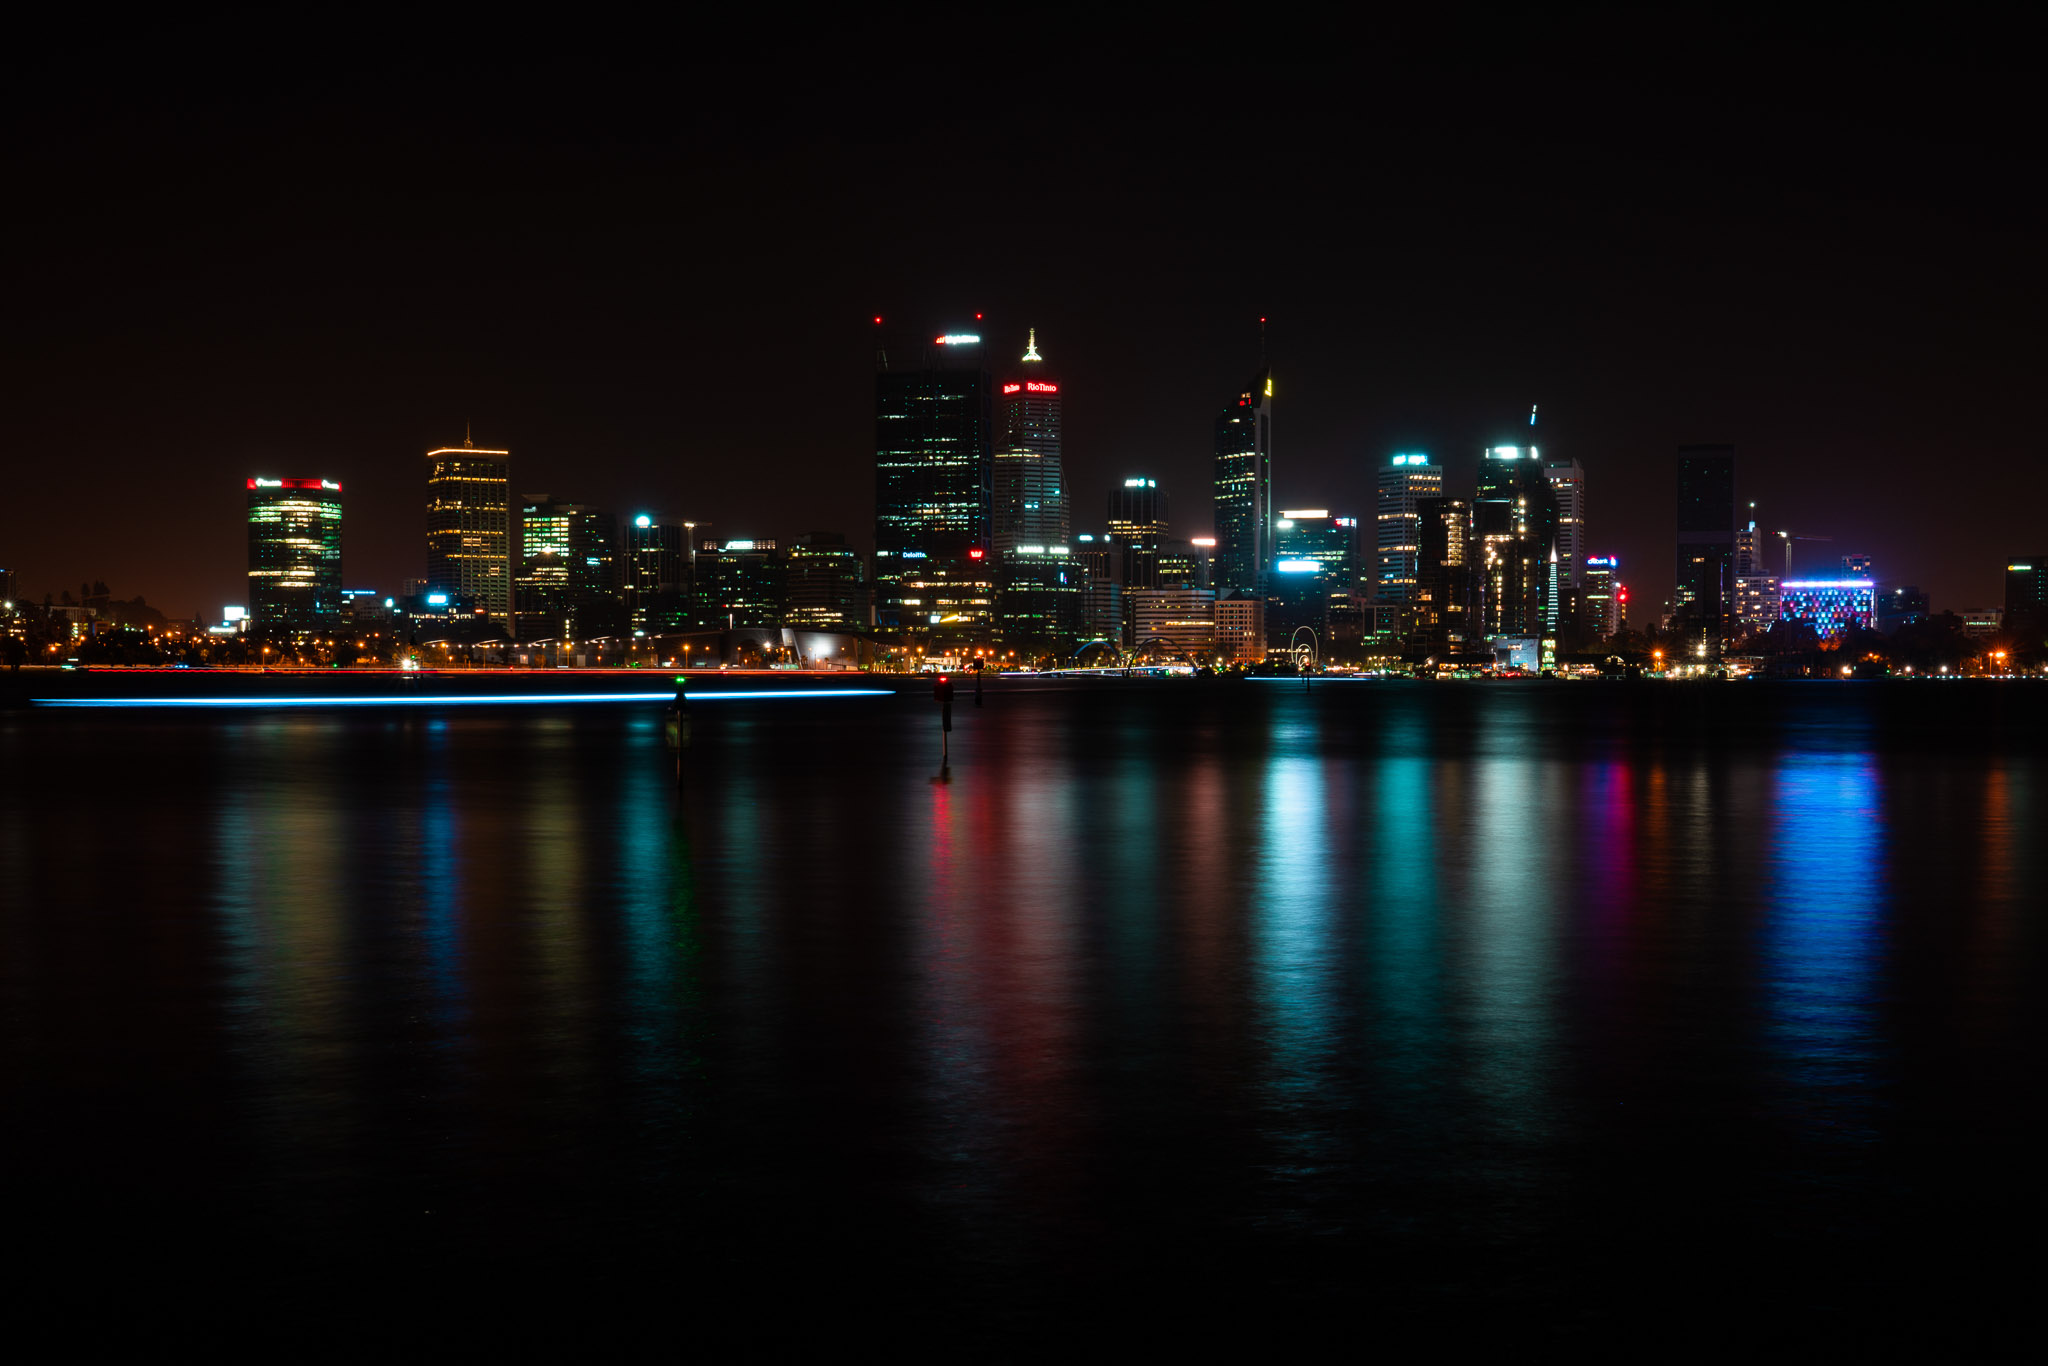 Perth (City) Photography Workshop - Day & Night